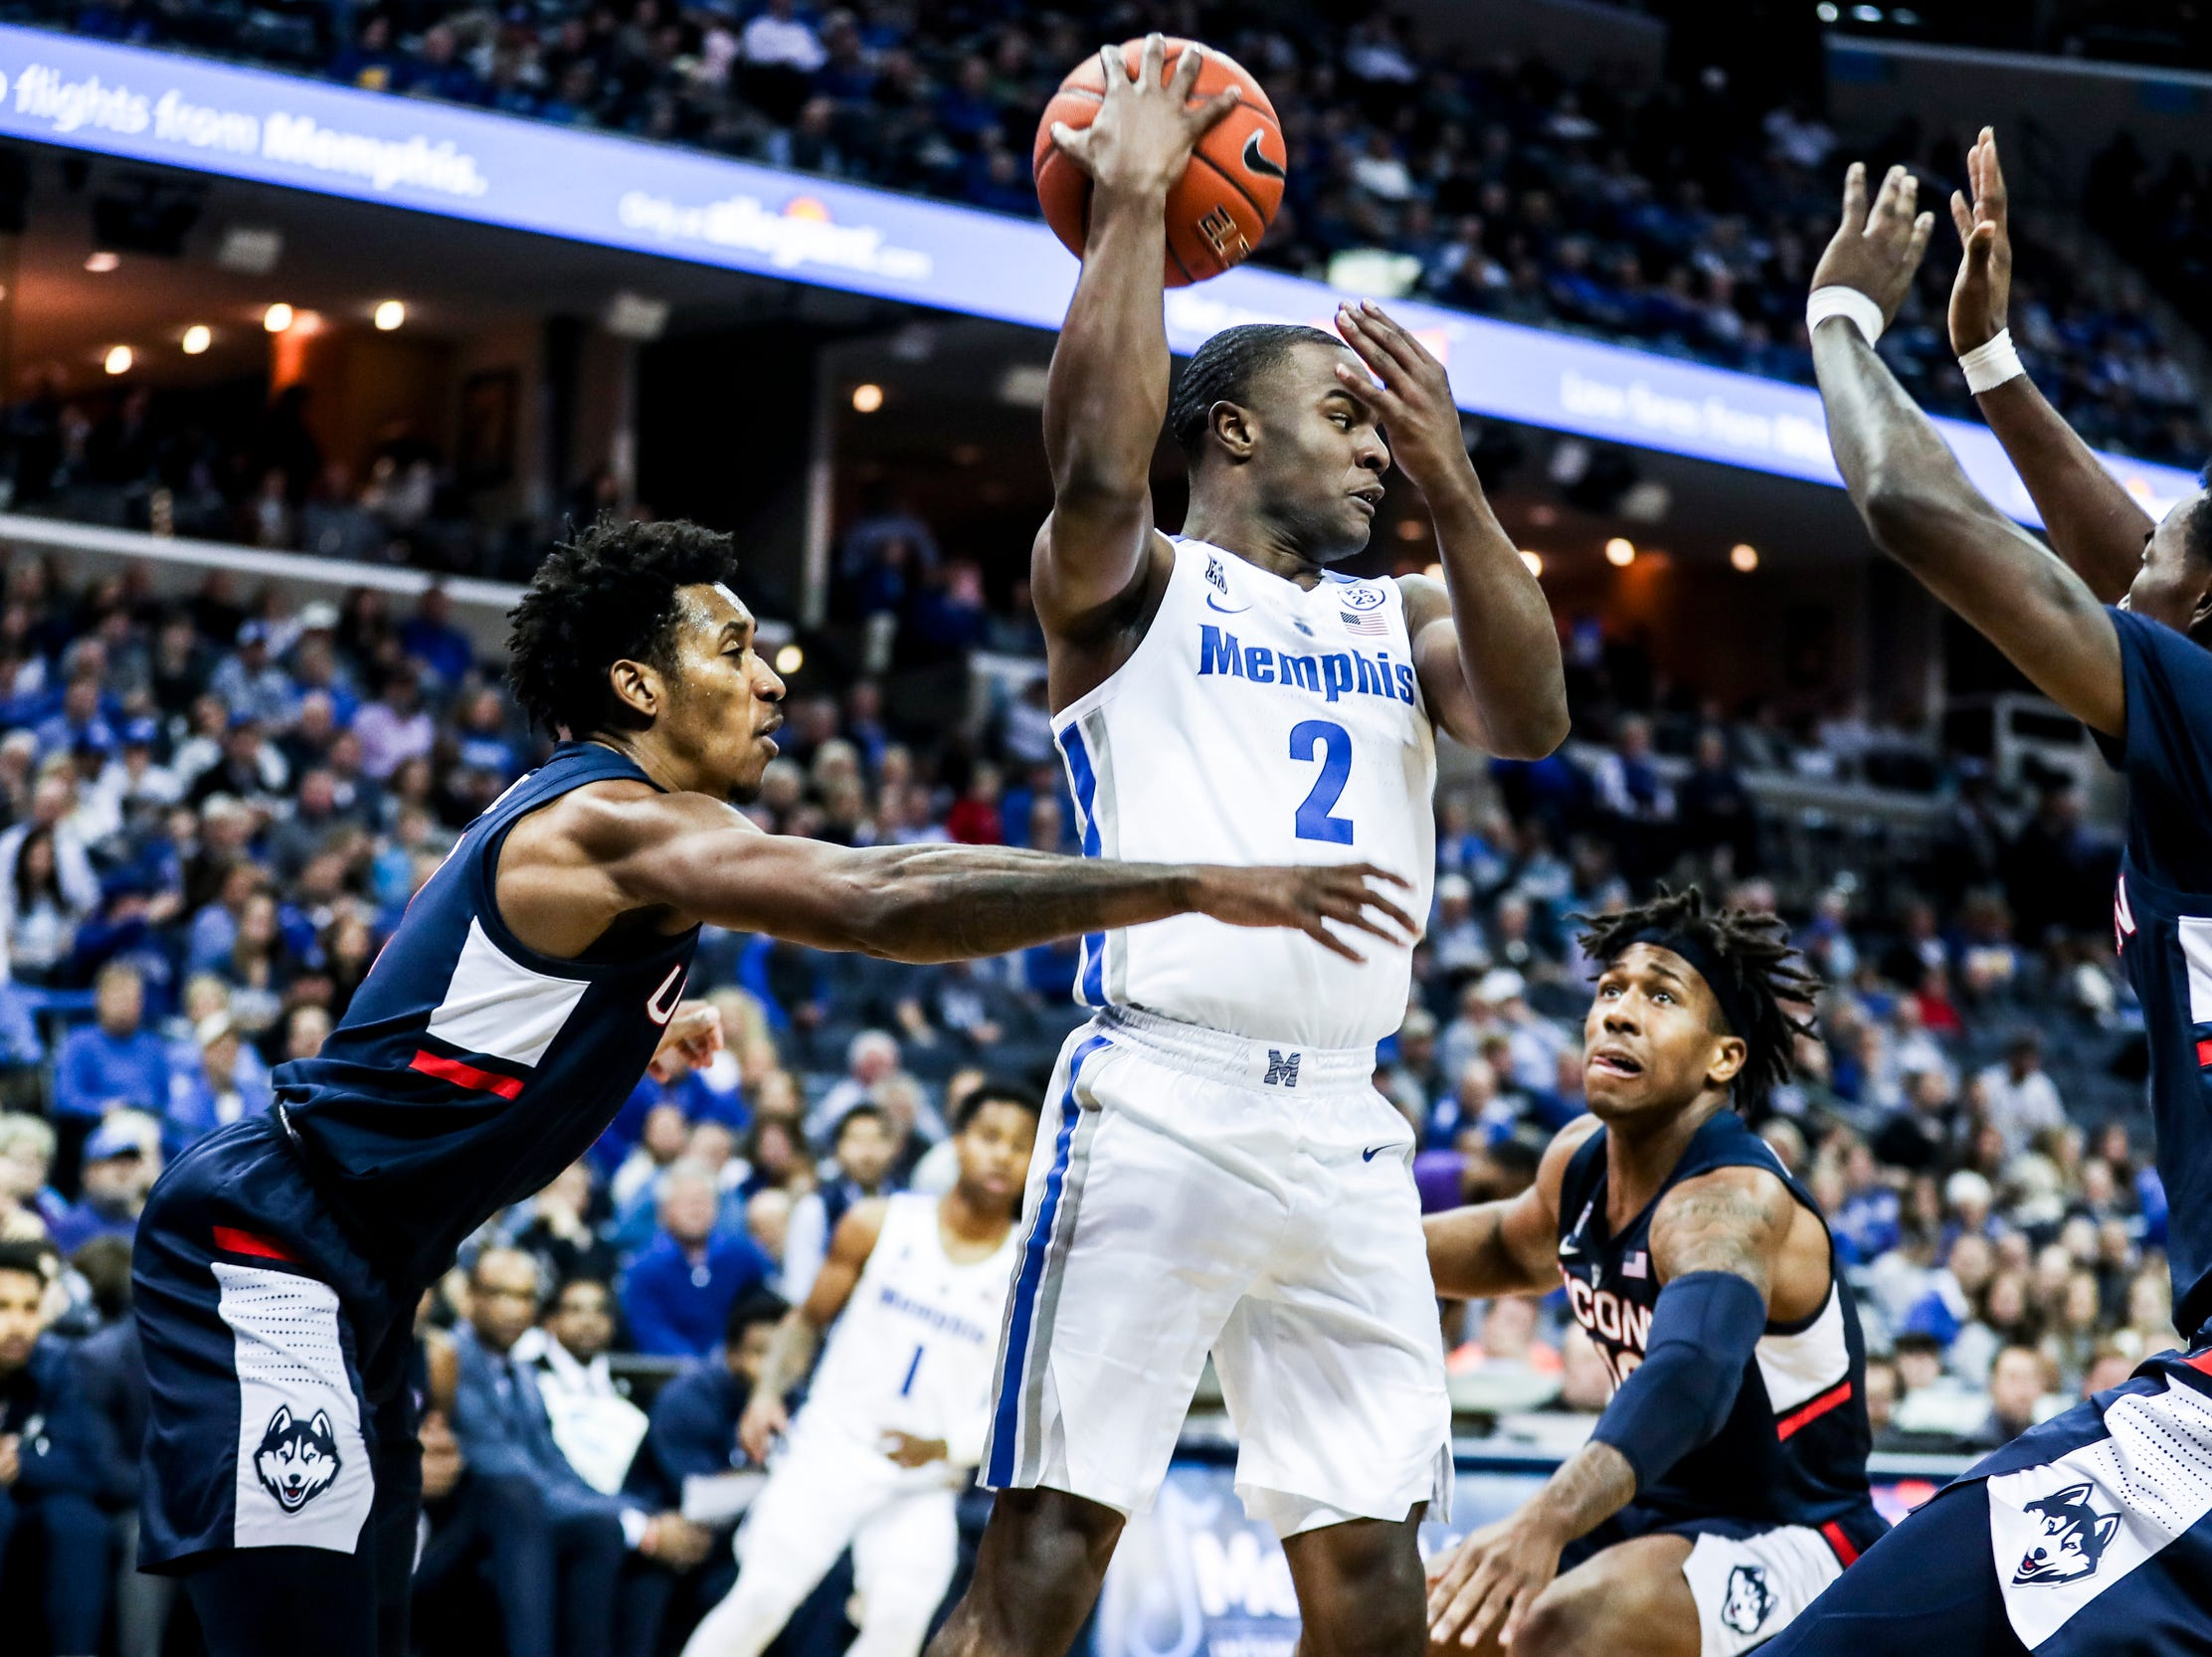 February 10, 2019 - Memphis' Alex Lomax passes the ball off during Sunday's game versus Connecticut at the FedExForum.